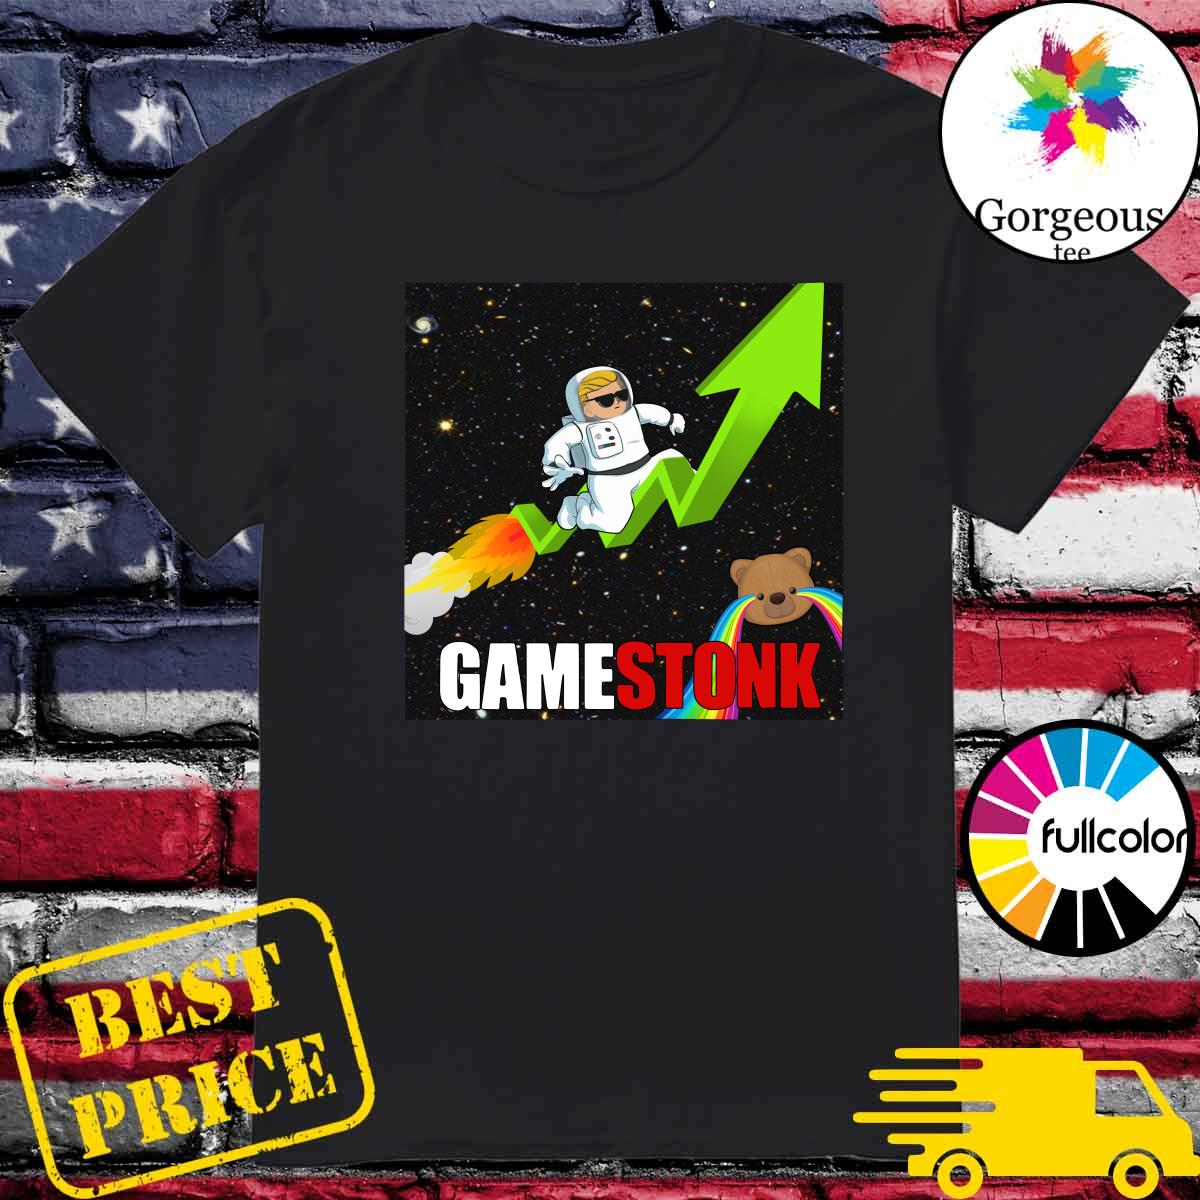 Official Logo #Gamestonk2021 – Gamestonk Stock Market – Can't Stop Game Stonk GME T-Shirt